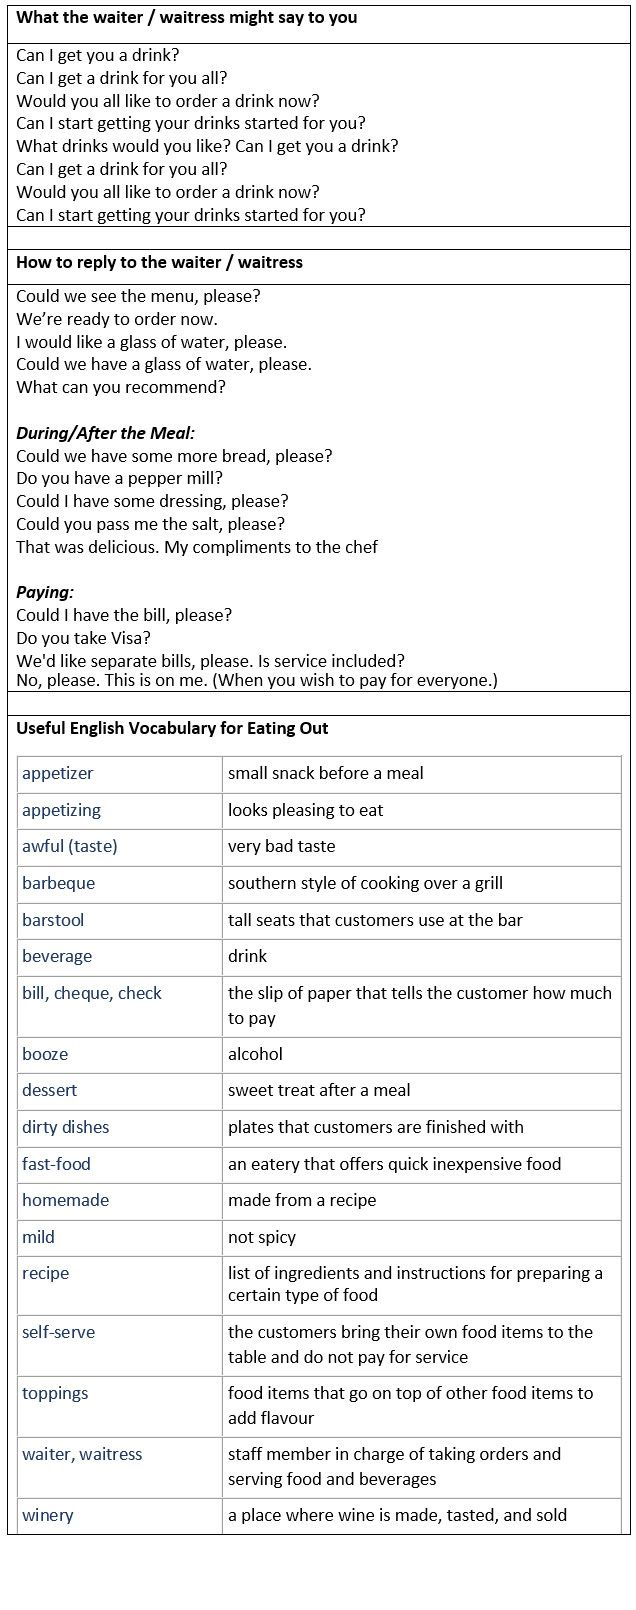 General English vocabulary for dining out in restaurants. Ordering Food in a Restaurant. - learn English,vocabulary,communication,english